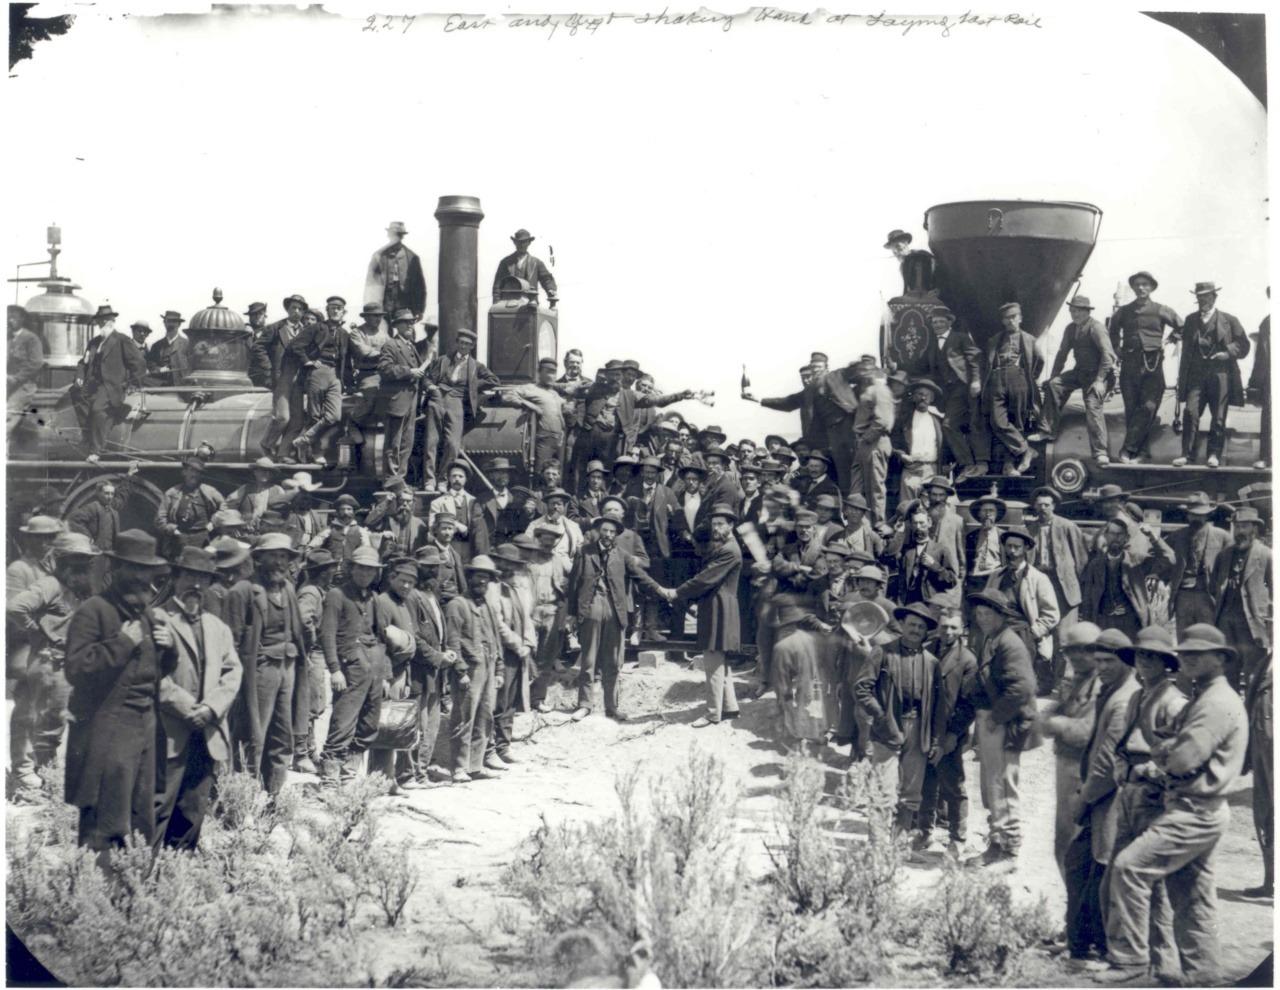 "Image description: This photo shows the joining of two railroads, marking the 143rd anniversary of the completion of the First Transcontinental Railroad across the United States. Completed on May 10, 1869, the railroad shortened the cross country trip from four months to just one week. A ceremony was held in Promontory Summit, Utah, about 35 miles away from where the railroad was joined together by the ""Golden Spike,"" which finally connected the two sides of the railroad, marking its completion. The National Park Service now operates the Golden Spike Historical Site in Promontory Point, Utah. Learn more about the First Transcontinental Railroad. Photo by A.J. Russell and Charles Phelps Cushing, photographers documenting the event."